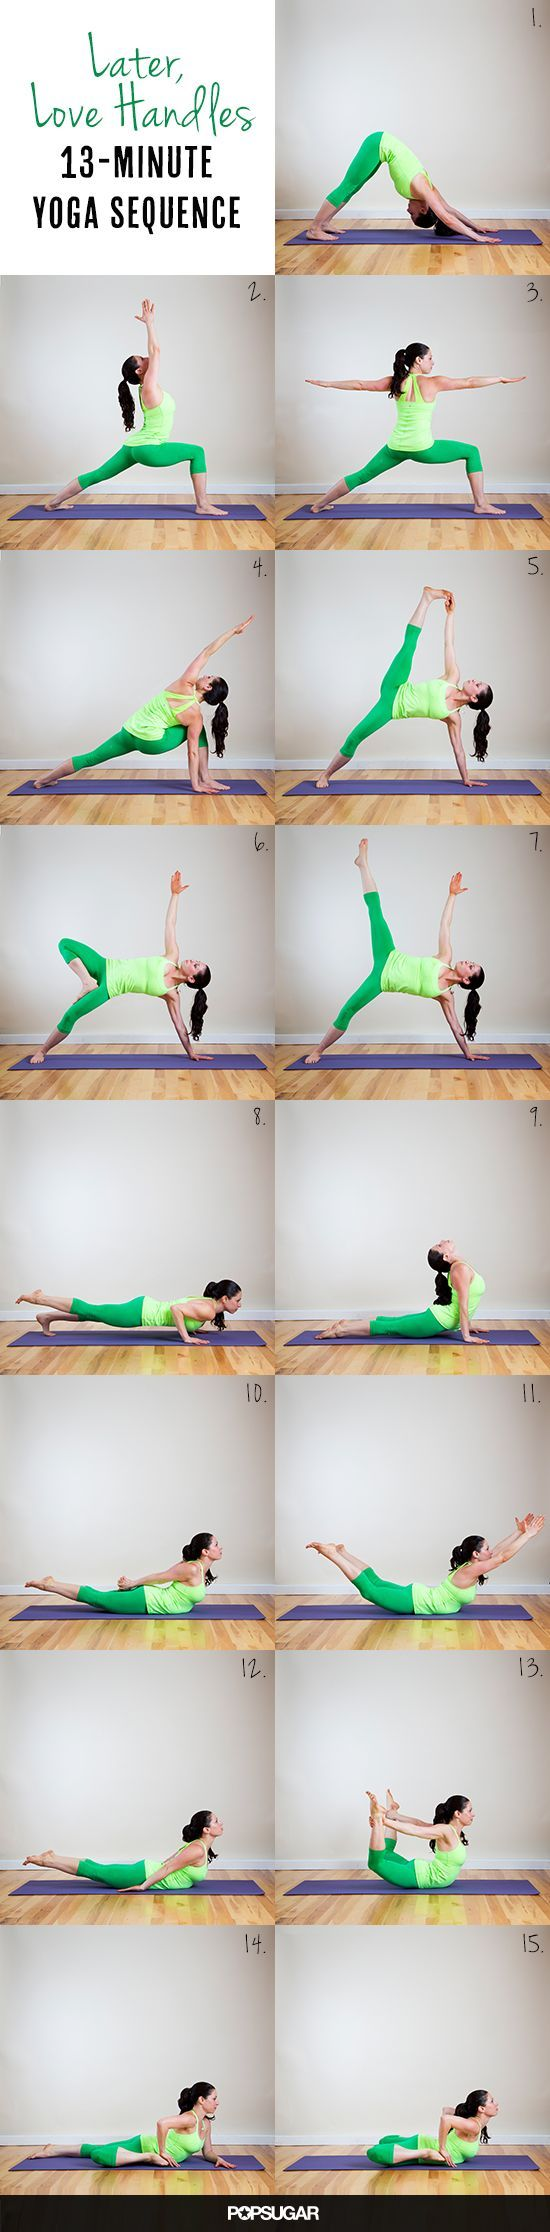 Later, Love Handles! 13-Minute Yoga Sequence to Trim Down Your Tummy @Cyndi Price Price Haynes Green